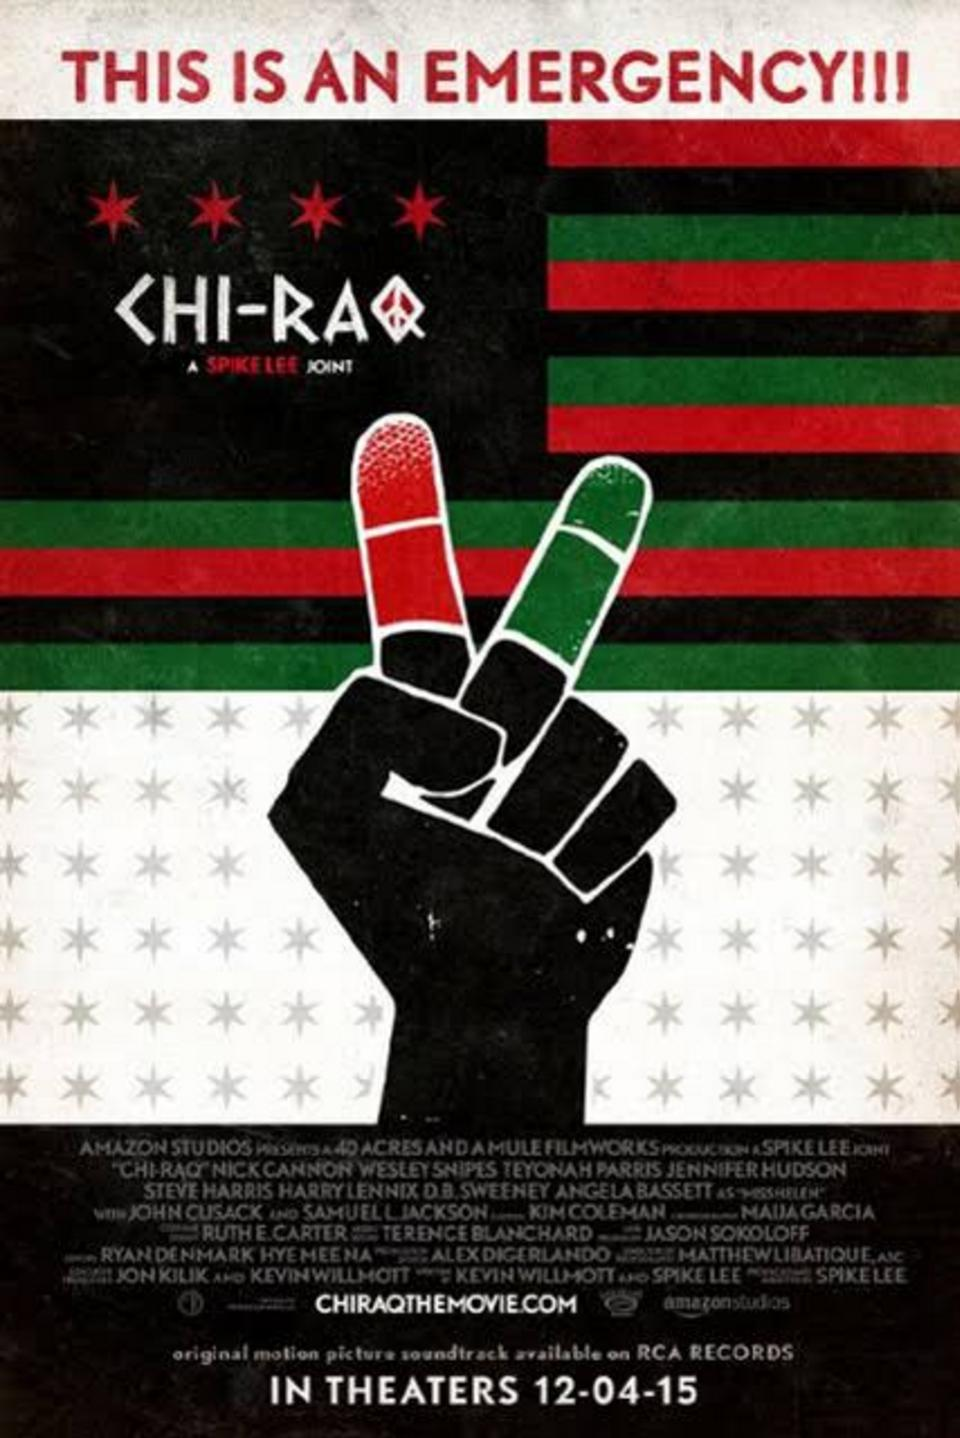 Official poster for ″Chi-Raq″